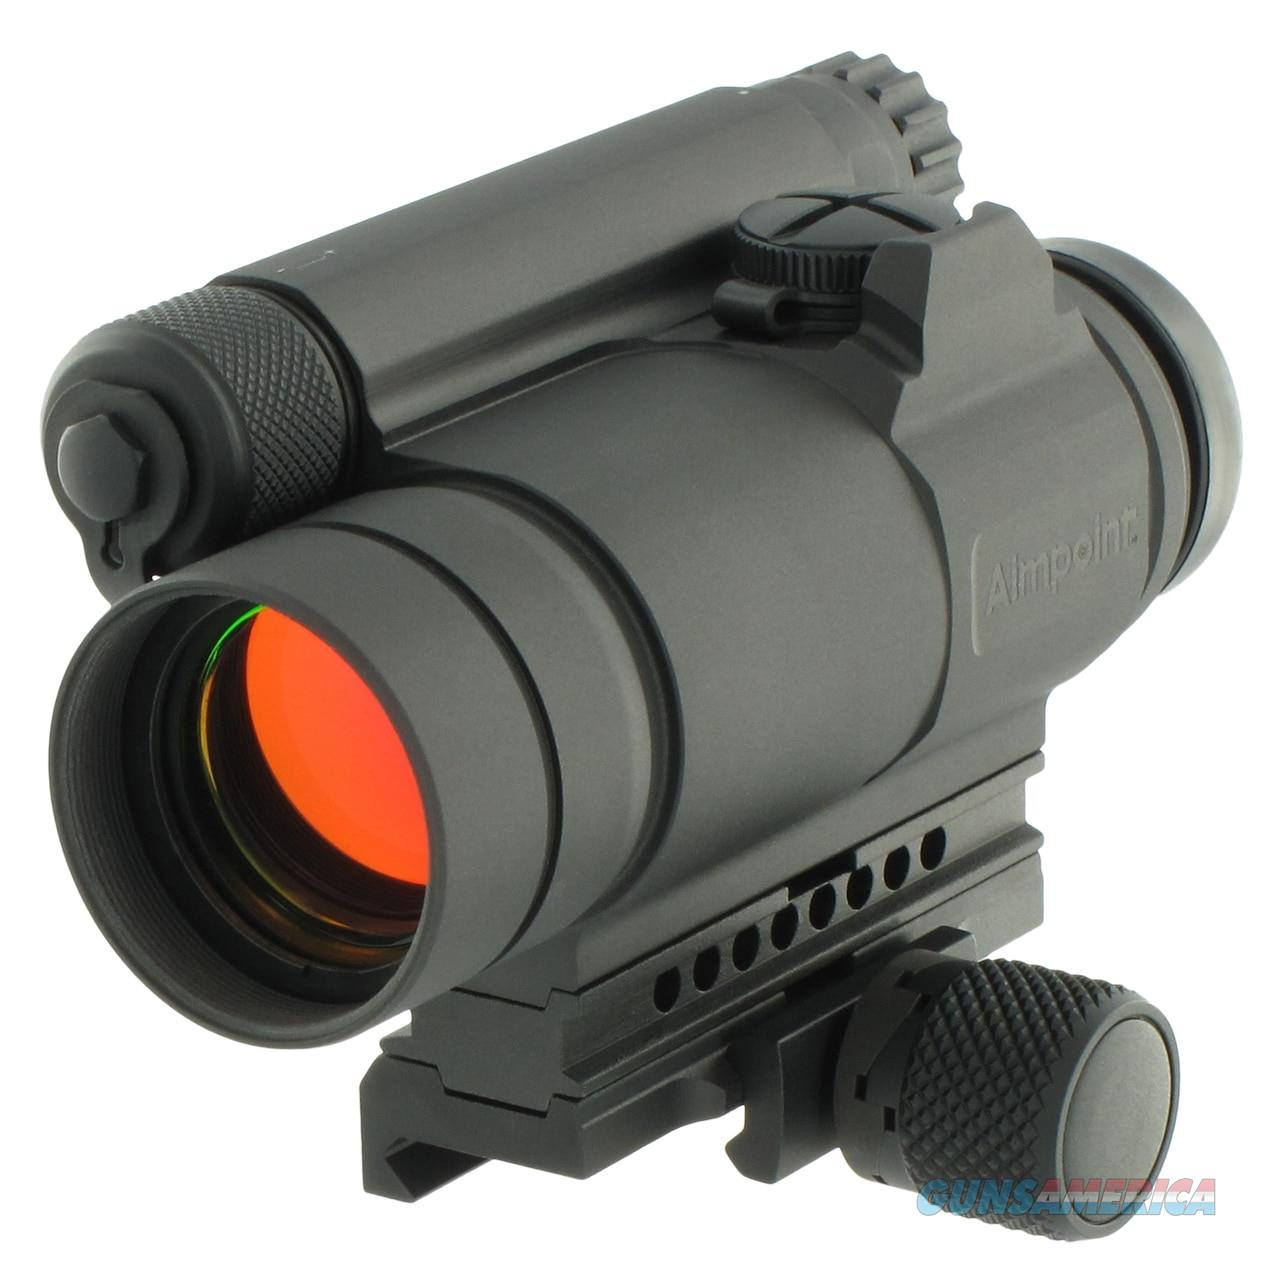 Aimpoint Compm4, 2 Moa Acet 11972  Non-Guns > Iron/Metal/Peep Sights